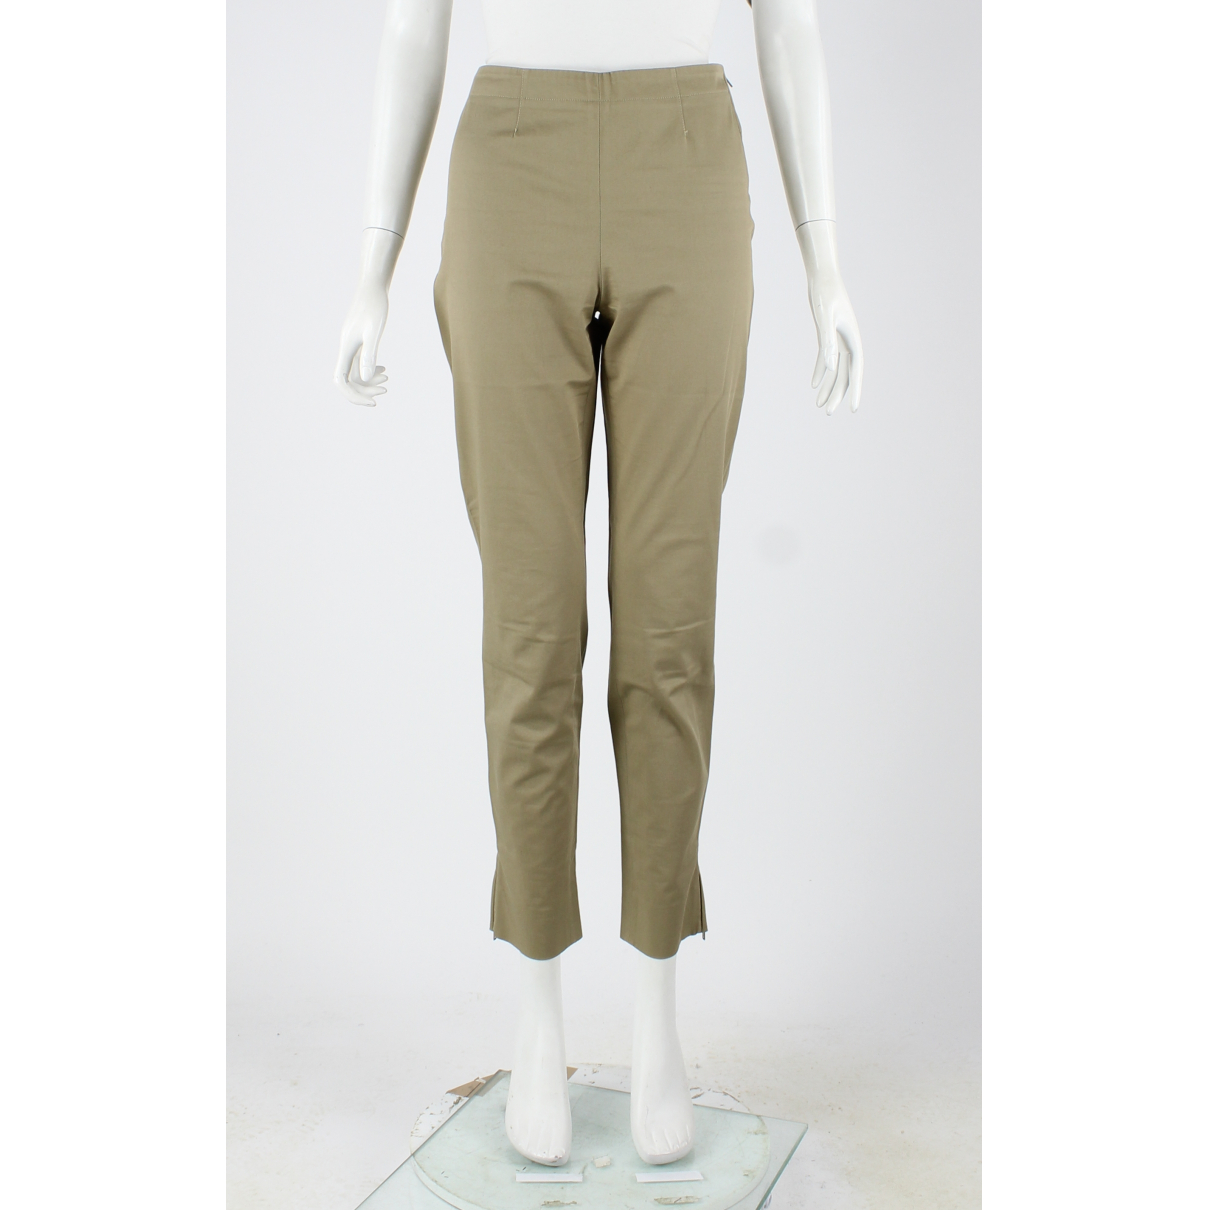 Miu Miu N Khaki Cotton Trousers for Women 42 FR